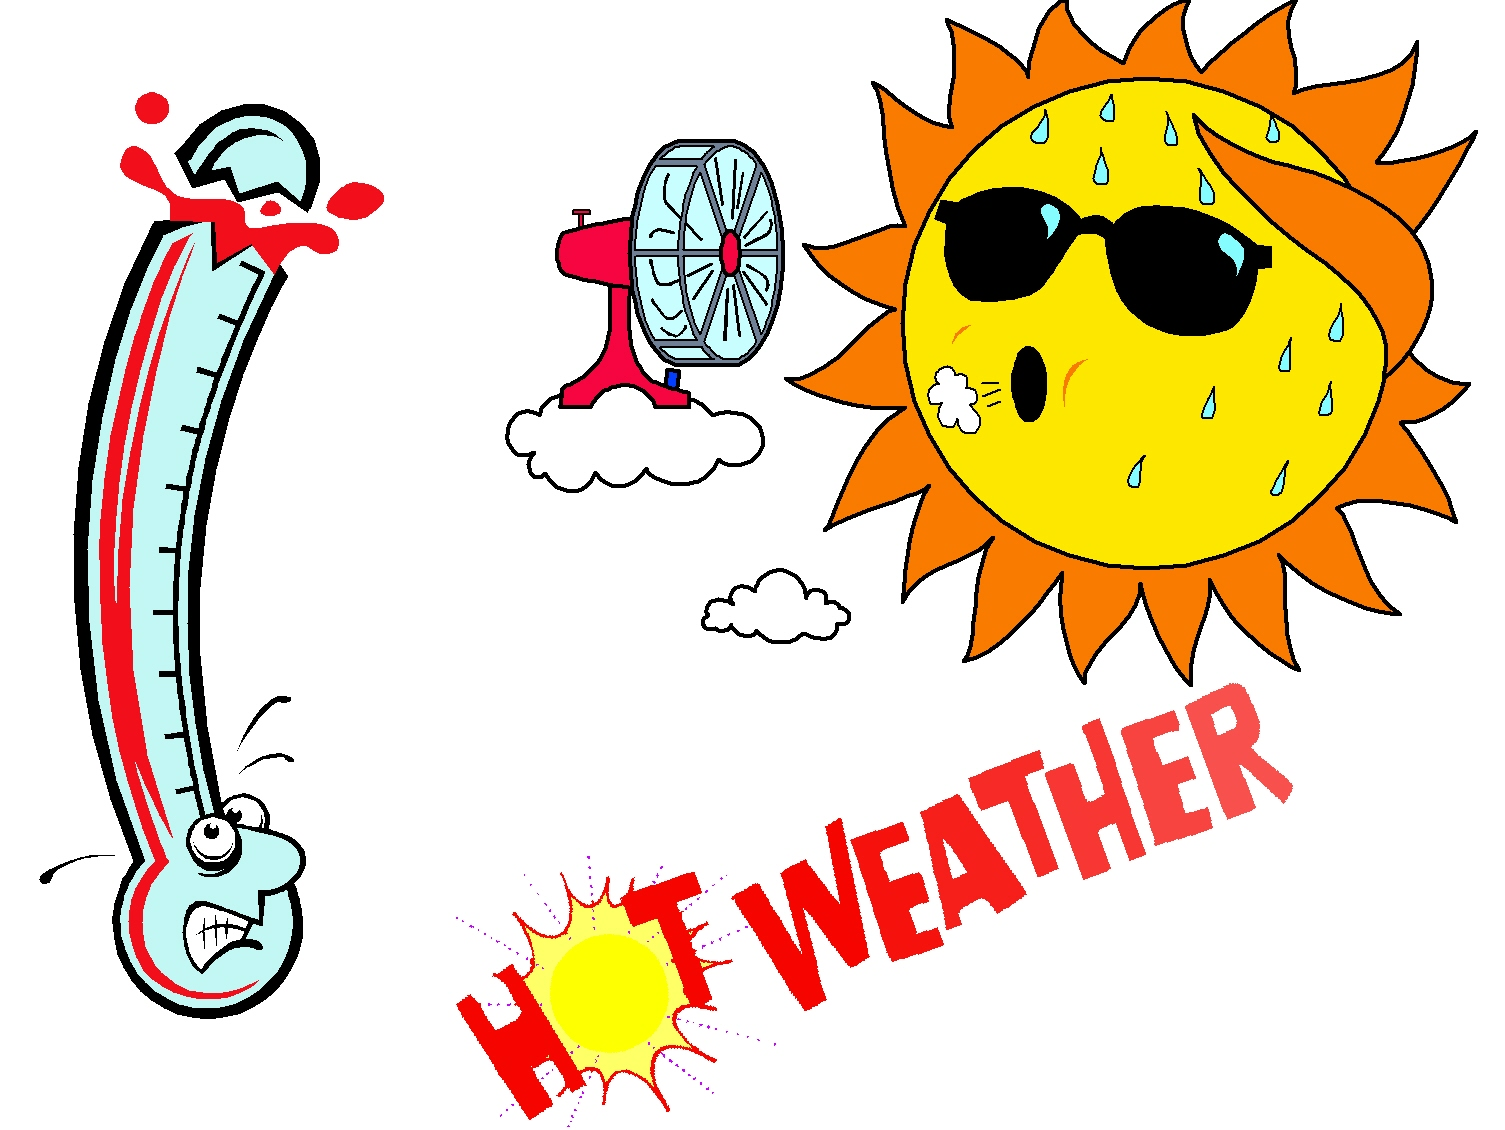 What Is The Usual Summer High Temperatur-What Is The Usual Summer High Temperature Where You Live 92 To 95-18